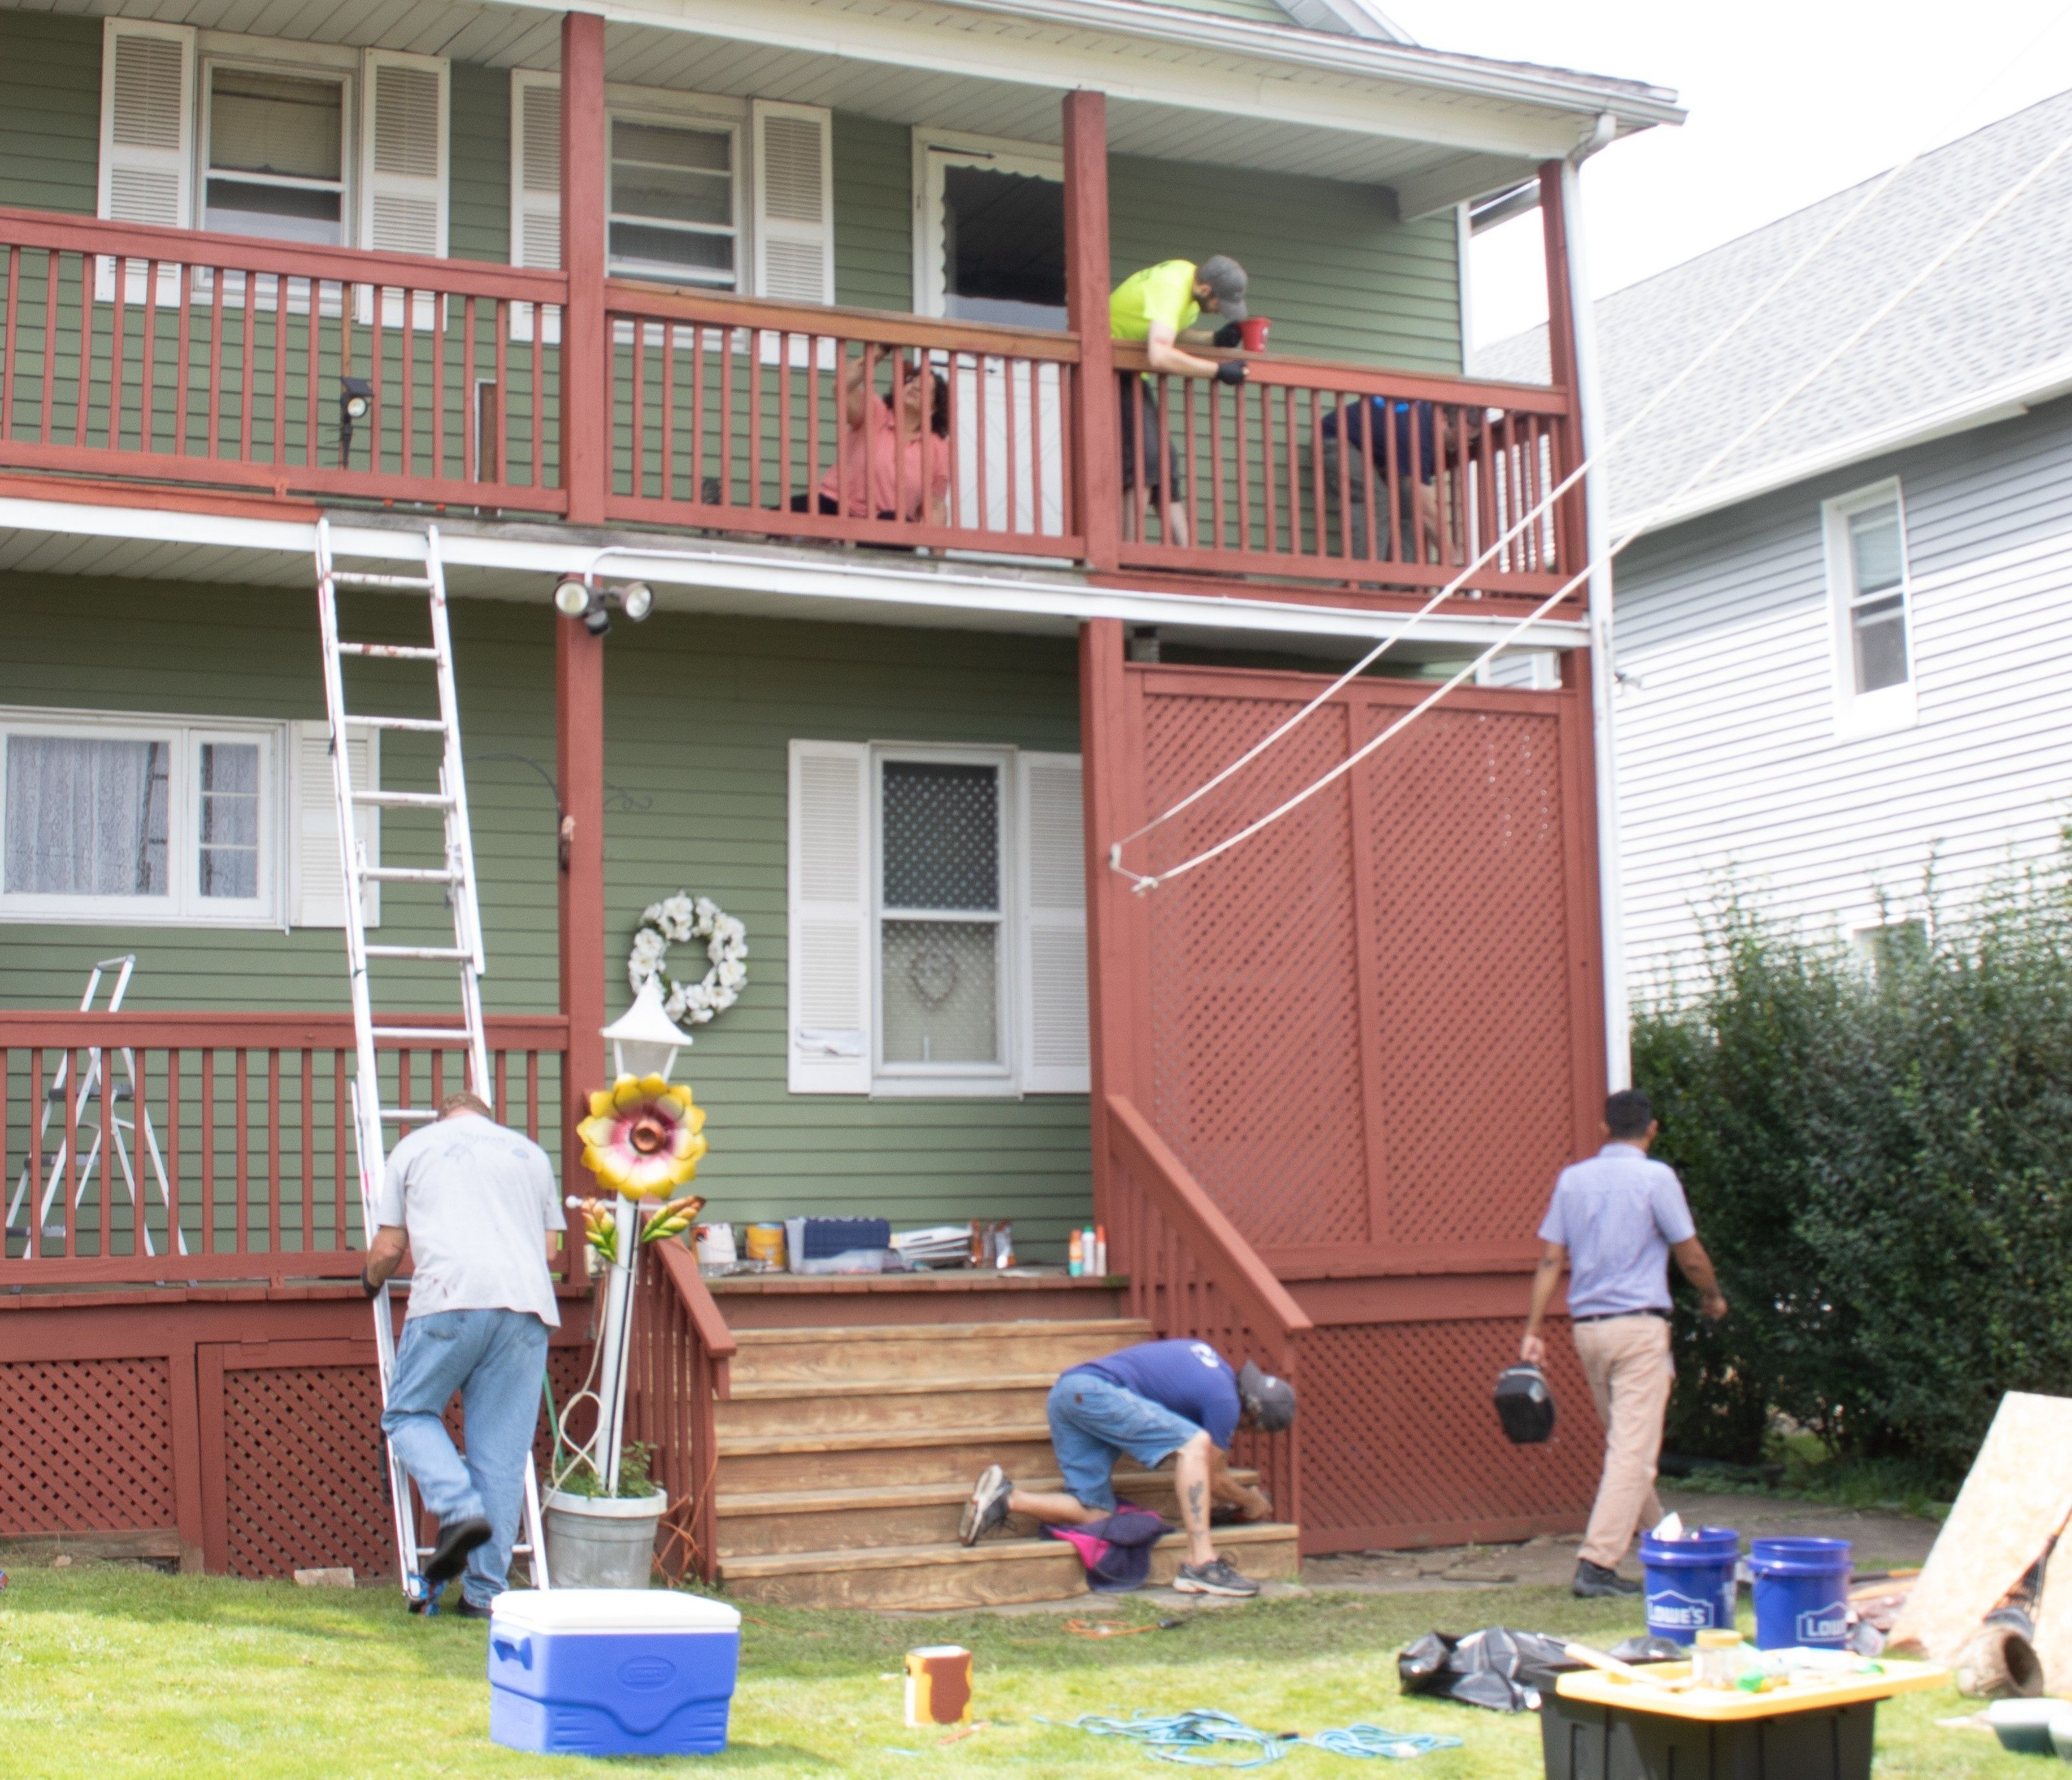 Yardwork being performed on a house.